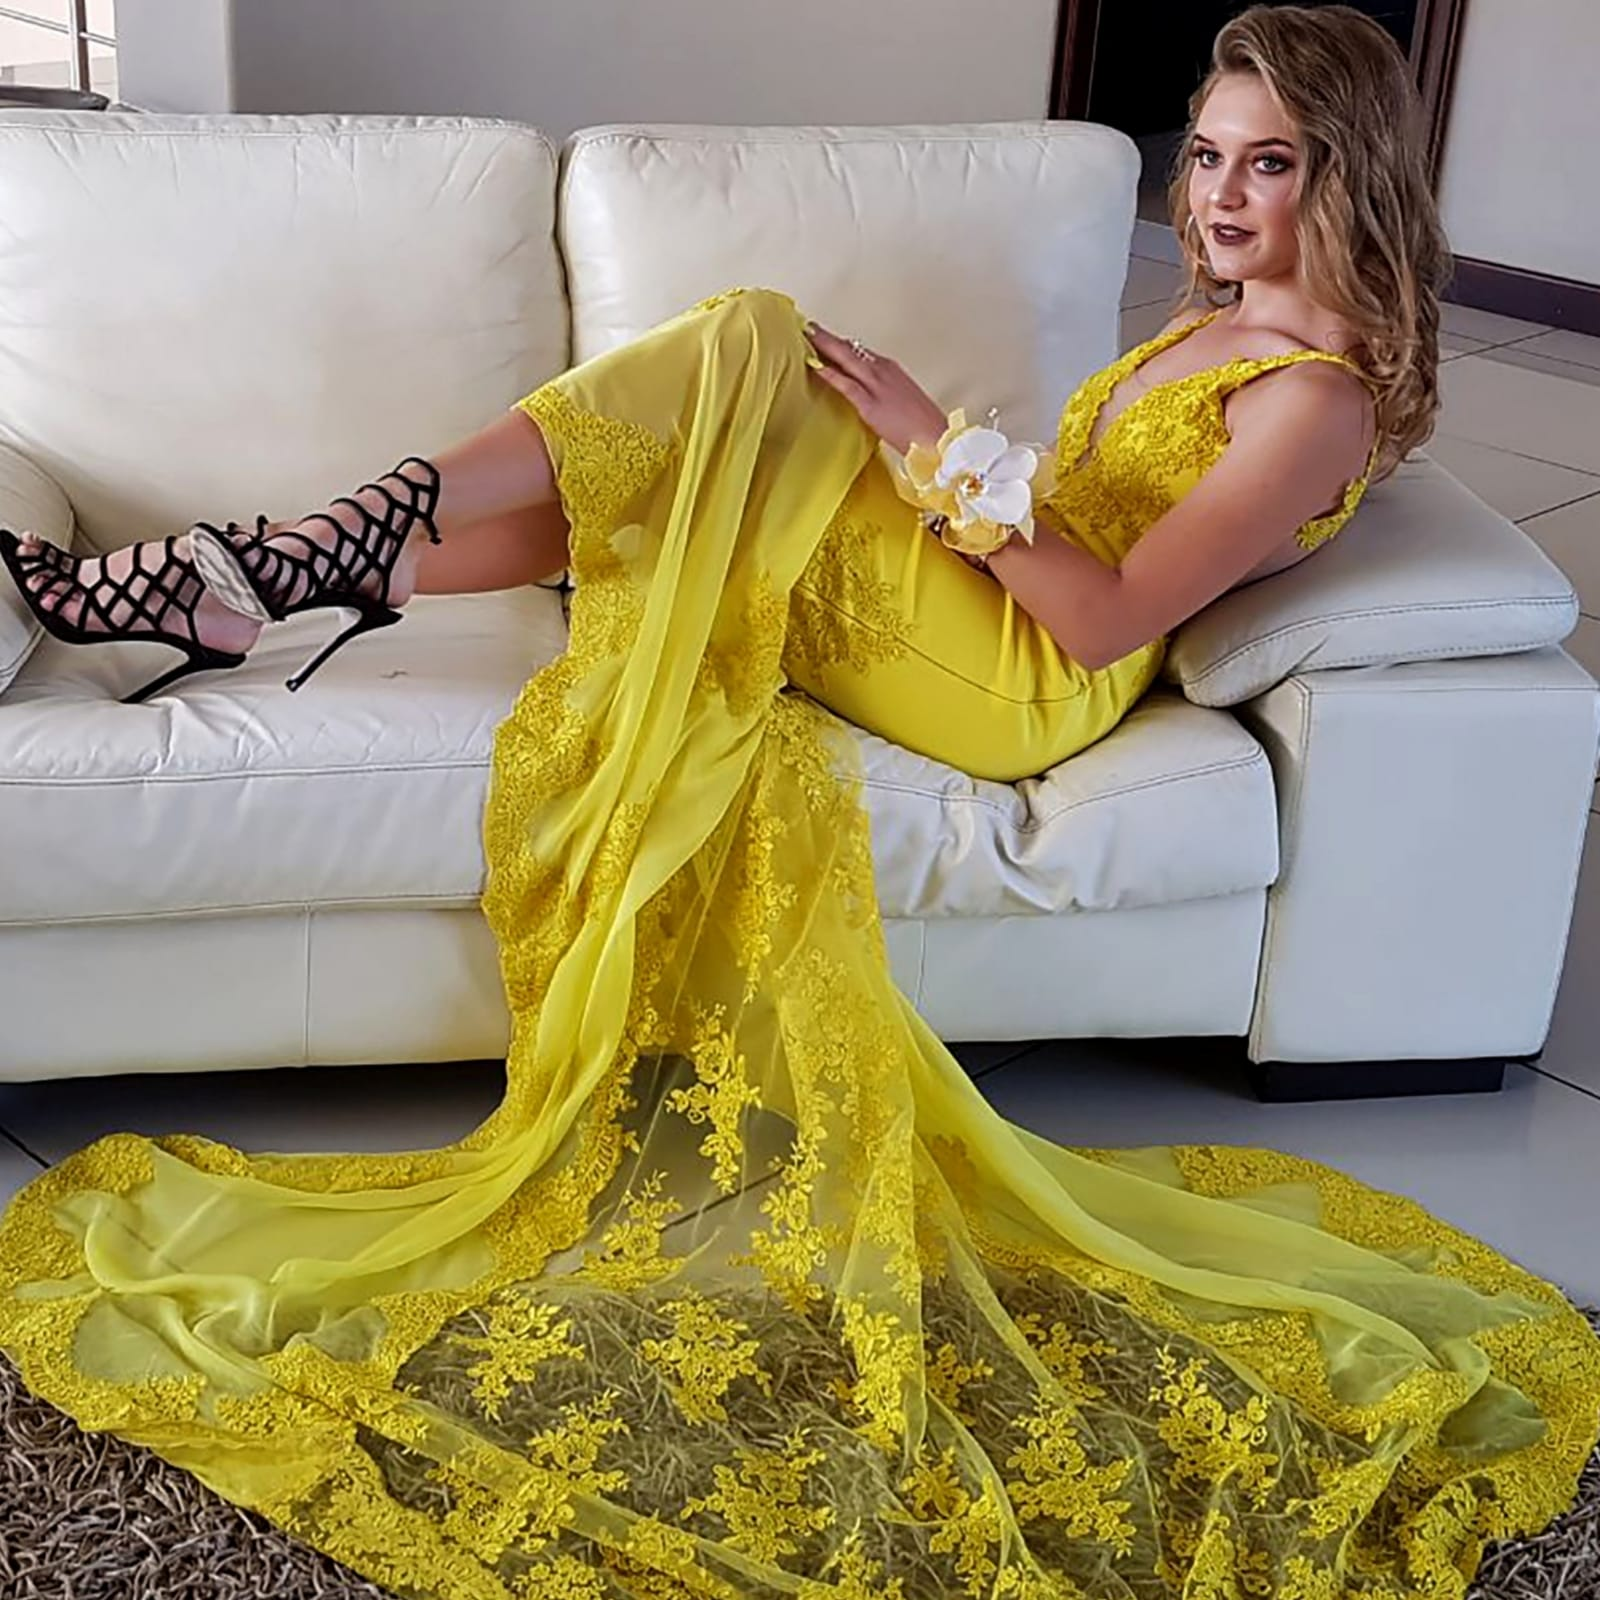 Canary yellow lace soft mermaid prom dress 5 canary yellow, lace, soft mermaid prom dance dress with sheer legs, detailed with lace. With an illusion open back.